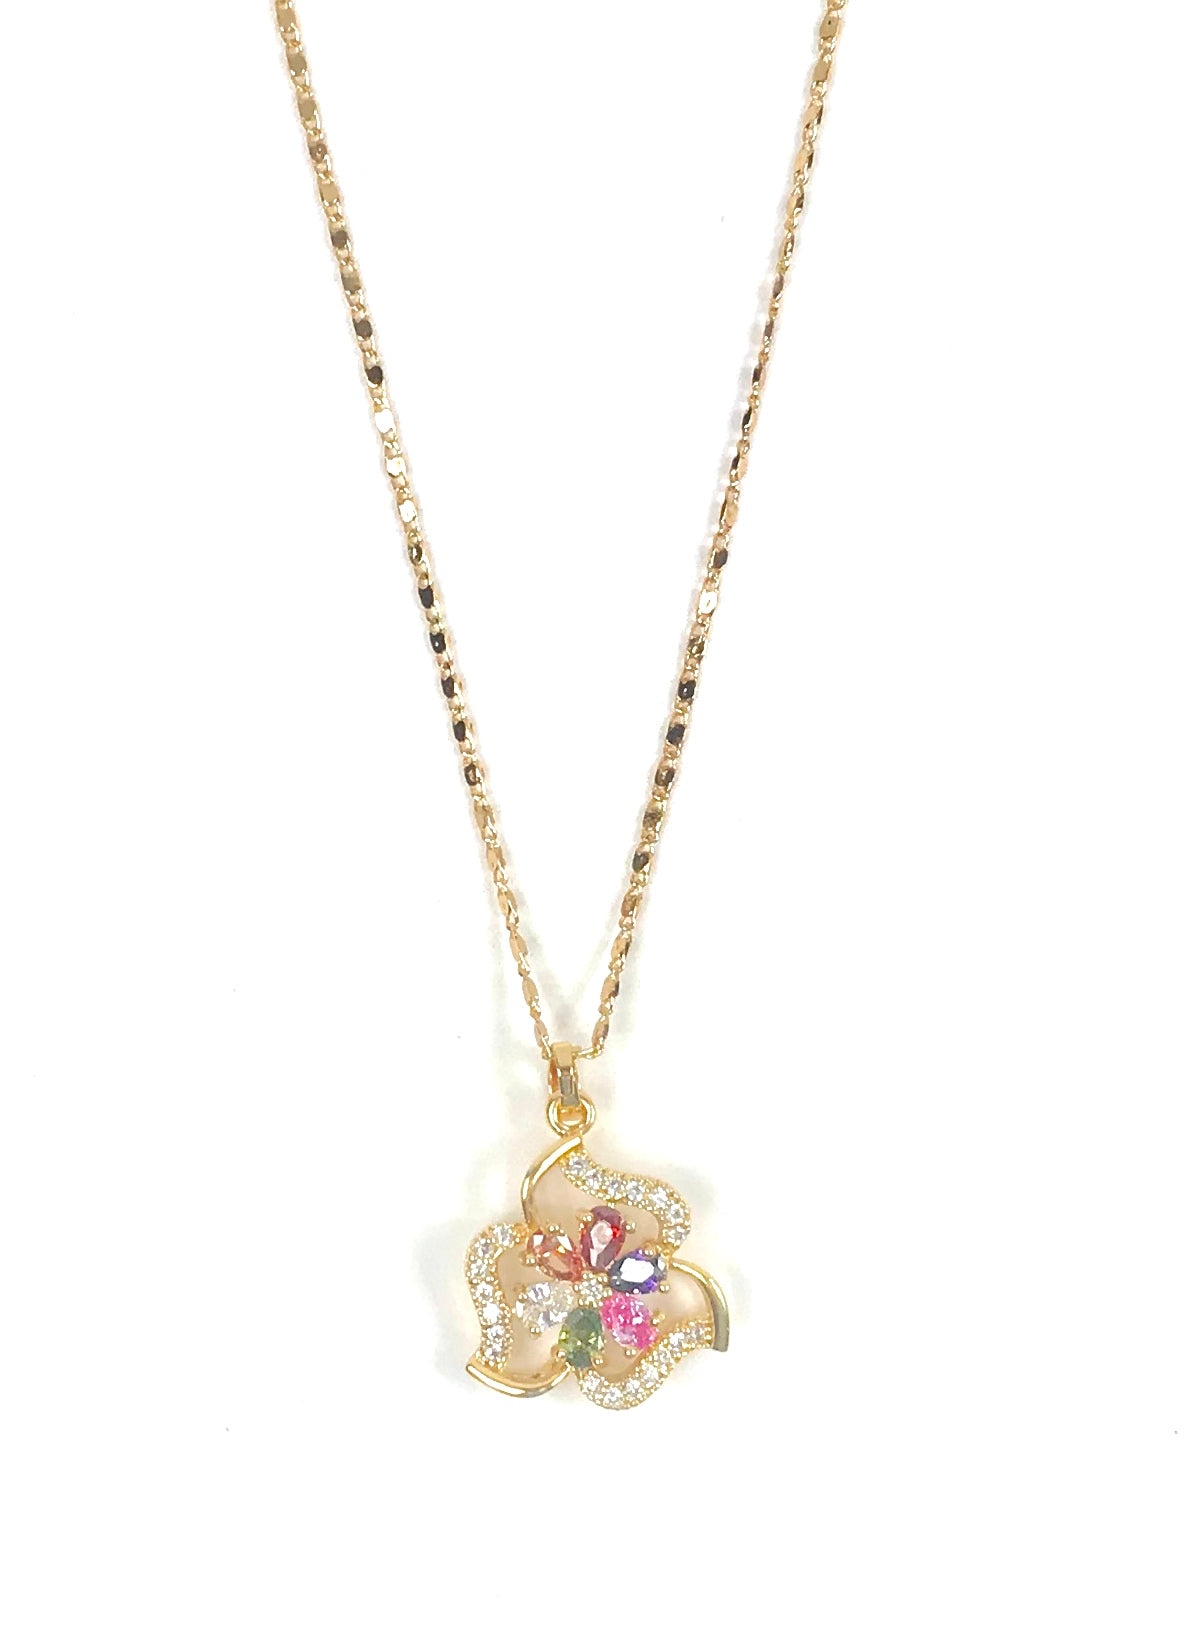 Colorful Flower shaped Necklace